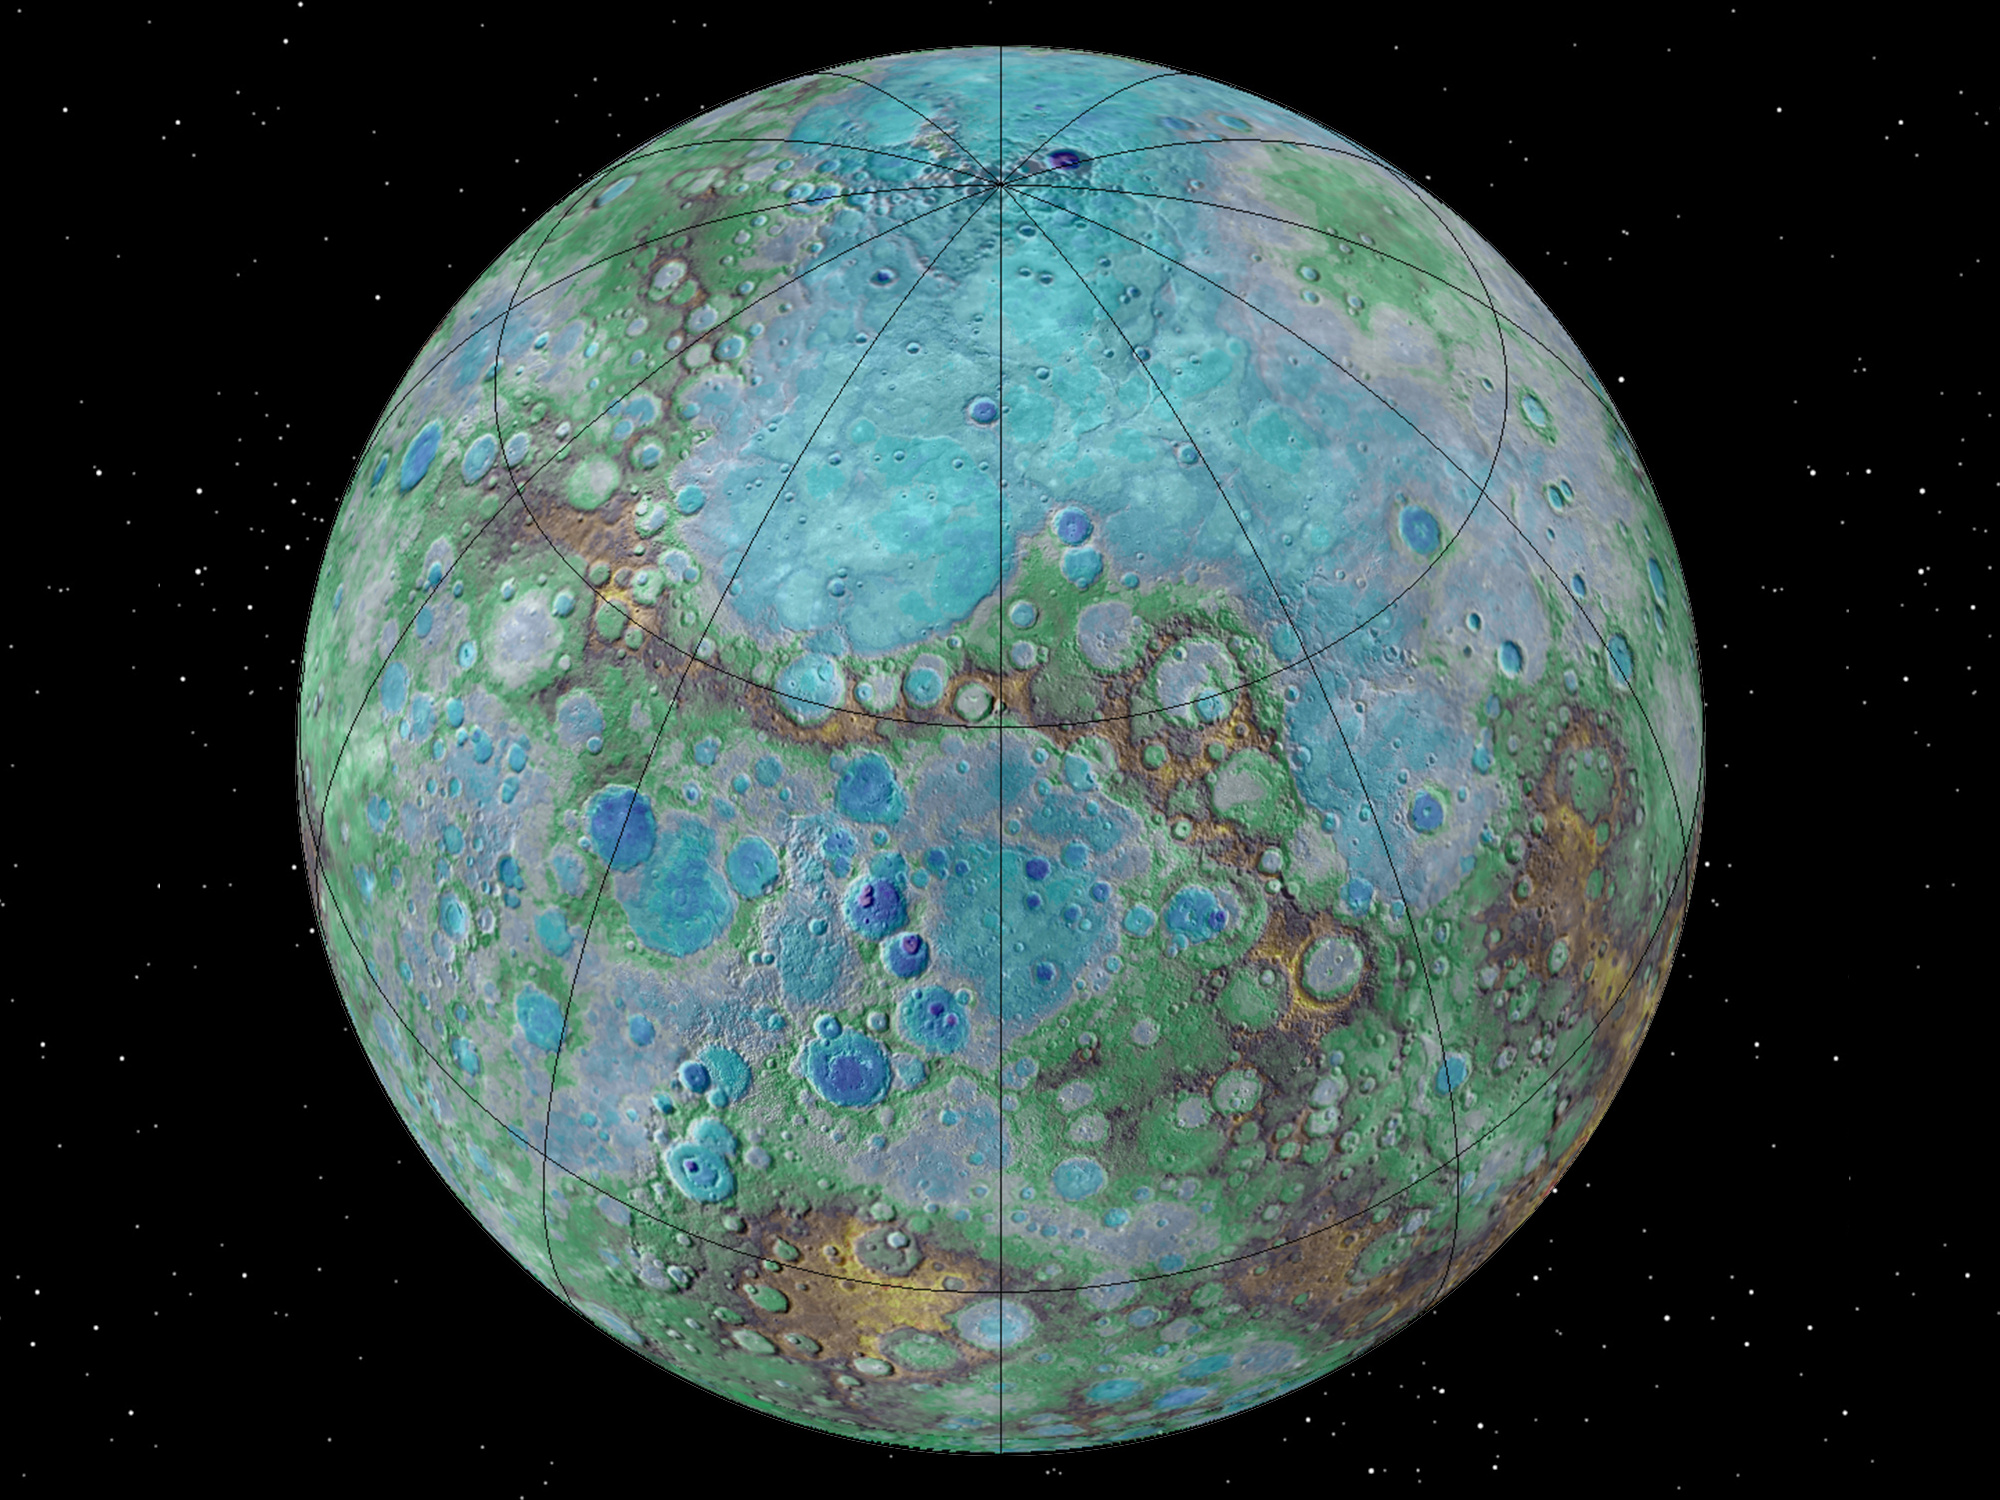 Surprising new NASA-funded research suggests that Mercury is contracting even today, joining Earth as a tectonically active planet. Illustration credits: NASA/JHUAPL/Carnegie Institution of Washington/USGS/Arizona State University.